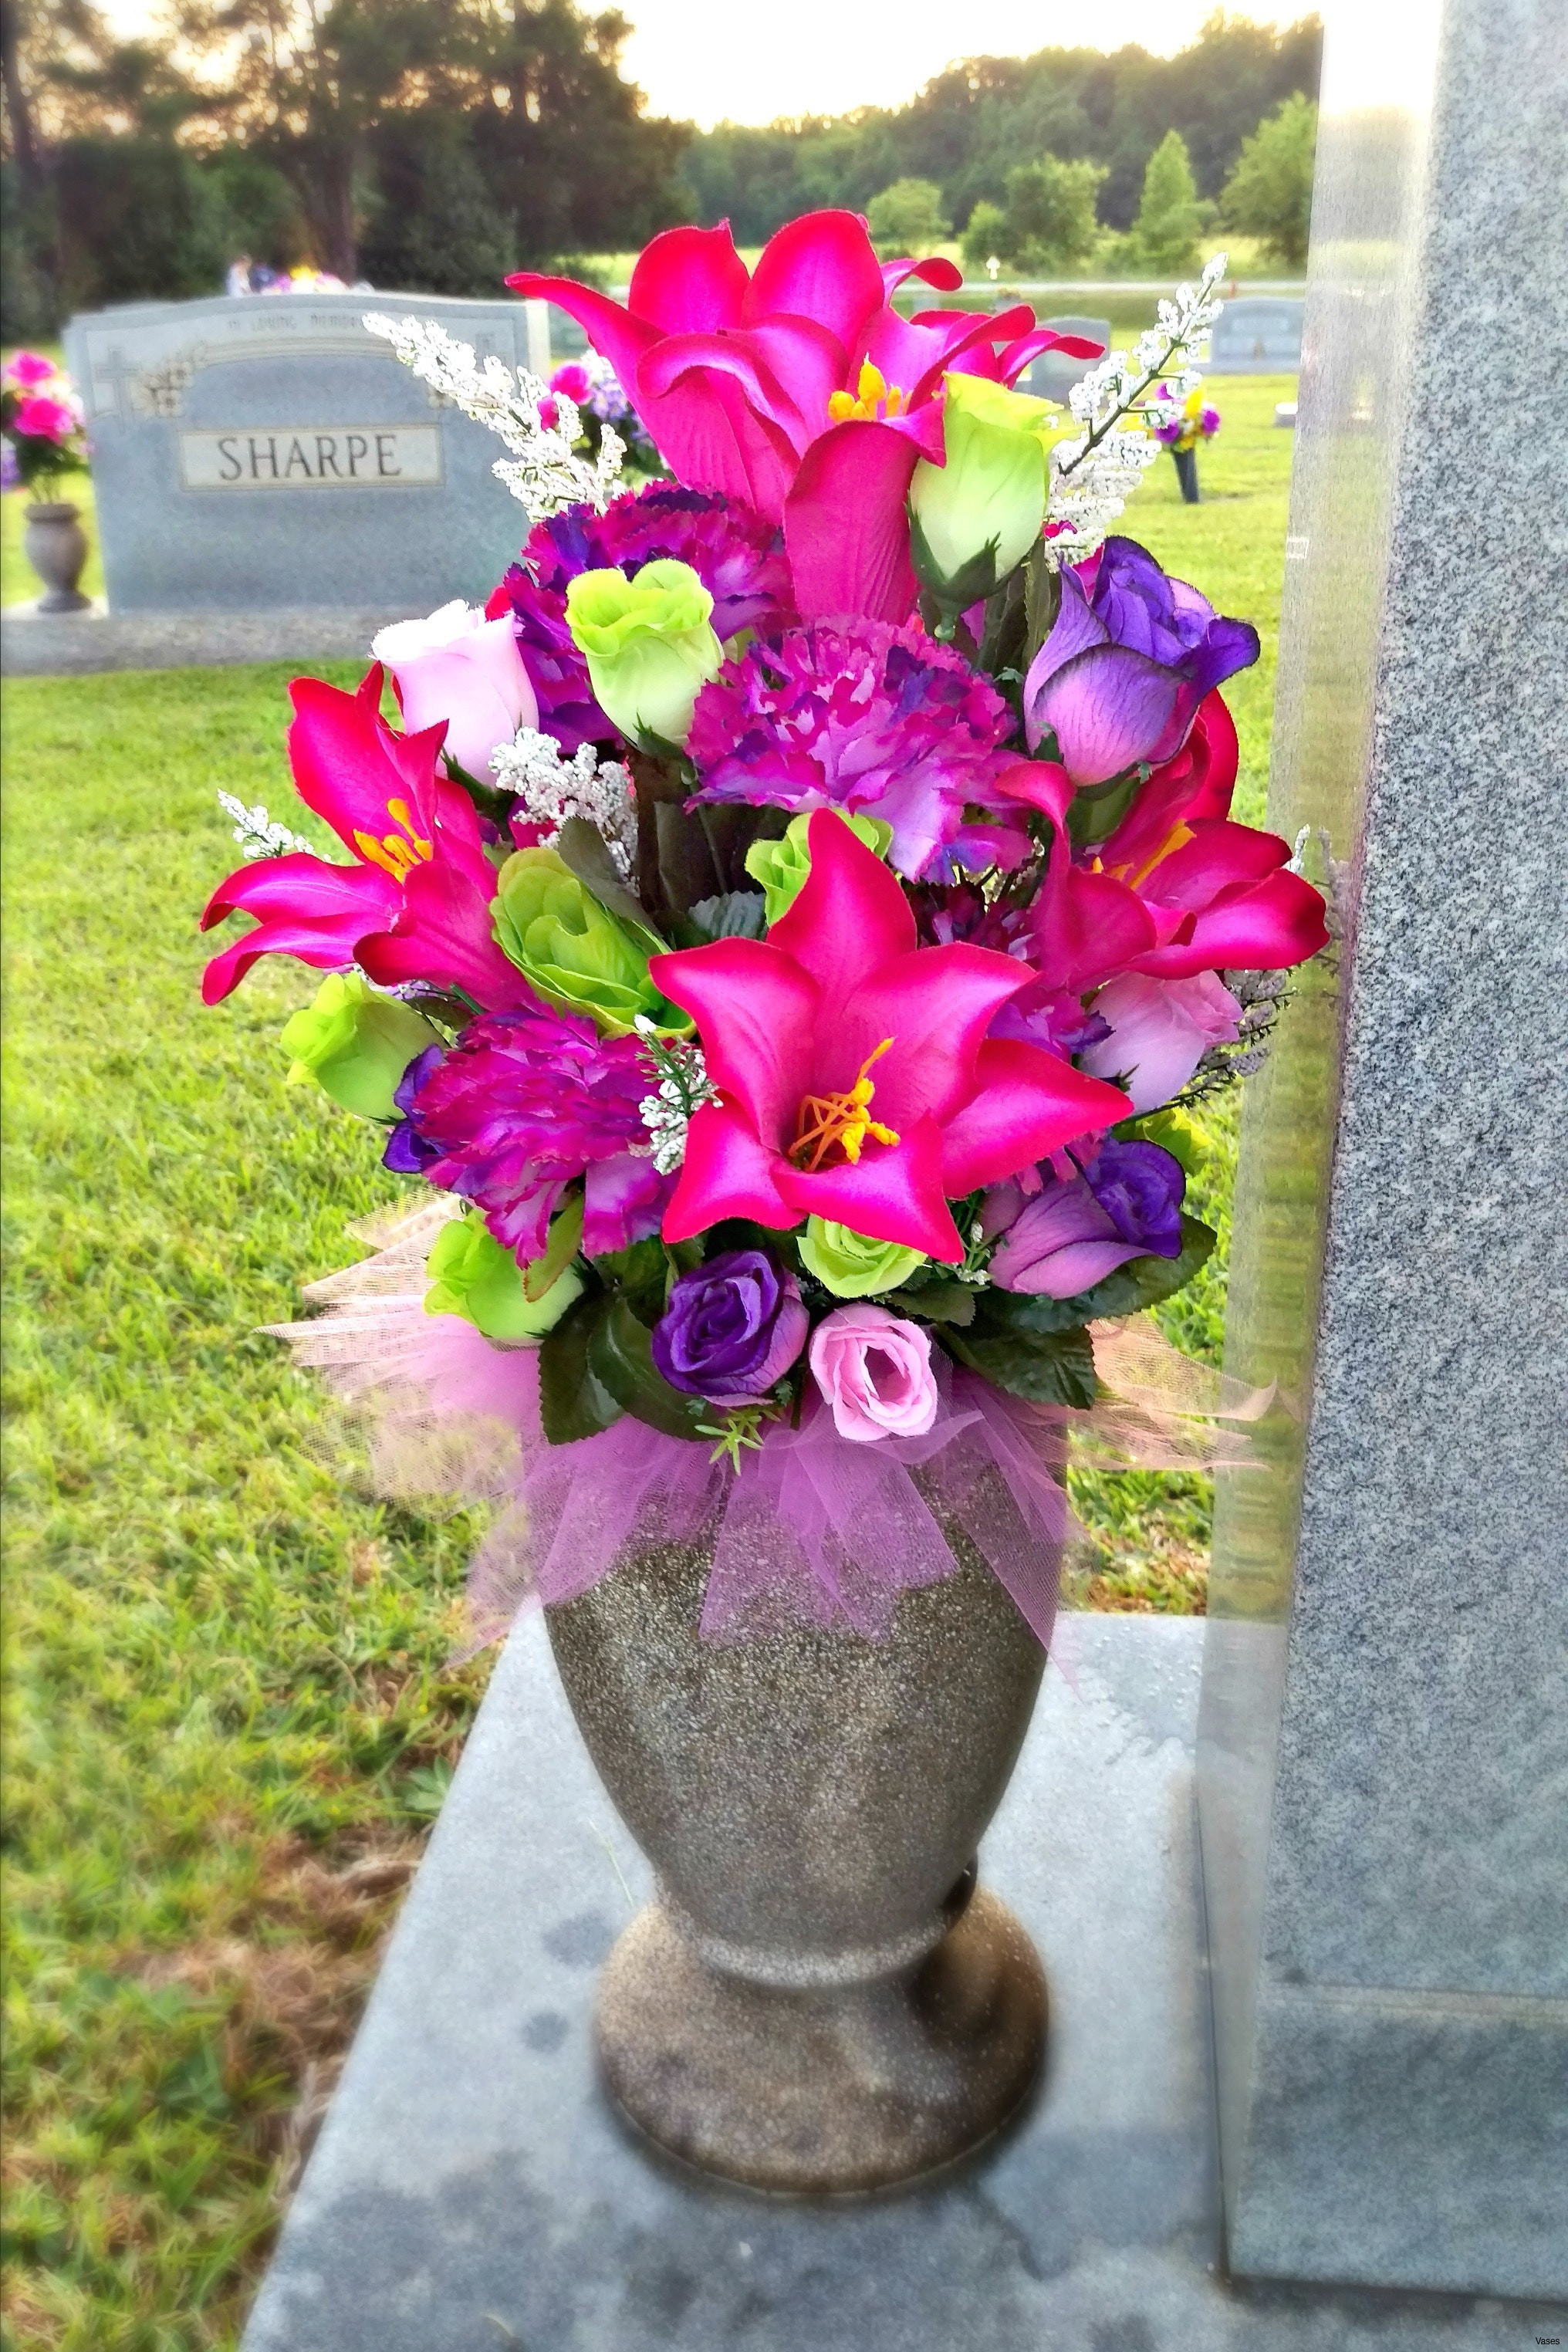 mccoy pottery pink vase of in ground cemetery vases pics vases for cemetery flowers vase and with regard to in ground cemetery vases images vases grave flower vase cemetery informationi 0d in ground holders of